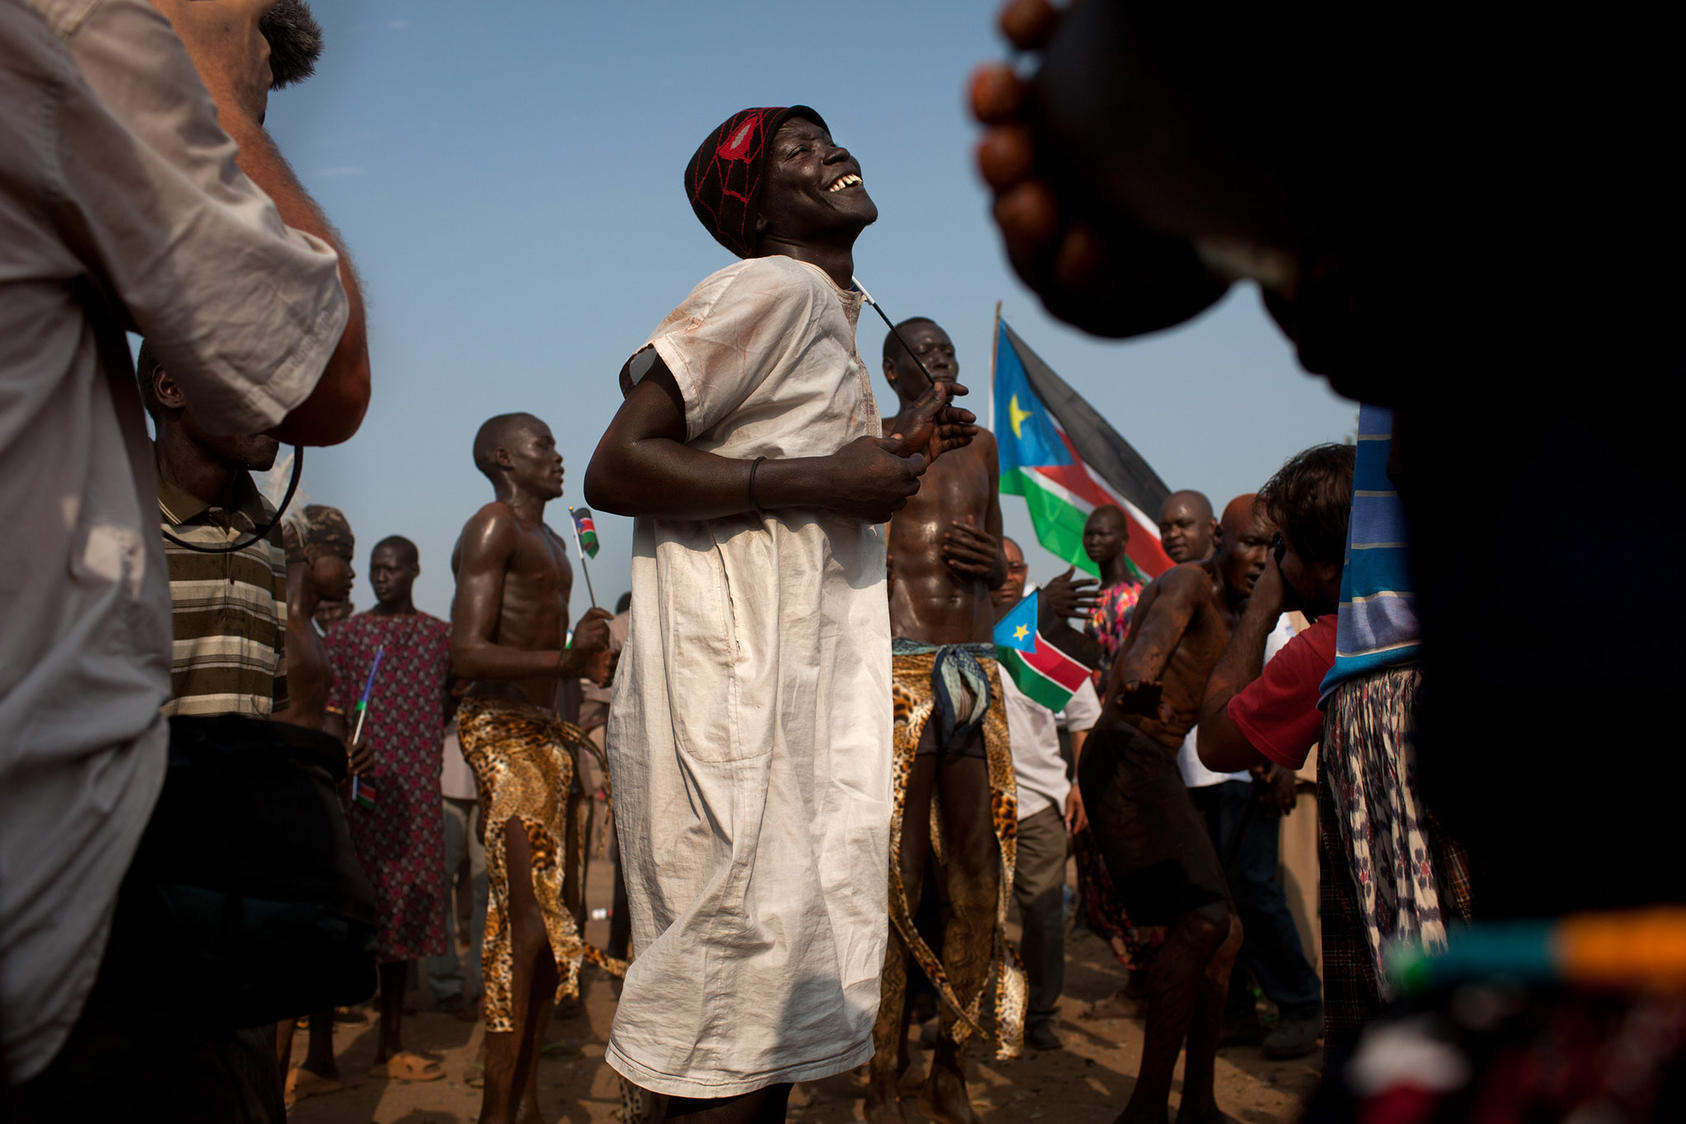 Revelers sing and dance as they celebrate their nation's independence in Juba, South Sudan, July 9, 2011. (Tyler Hicks/The New York Times)